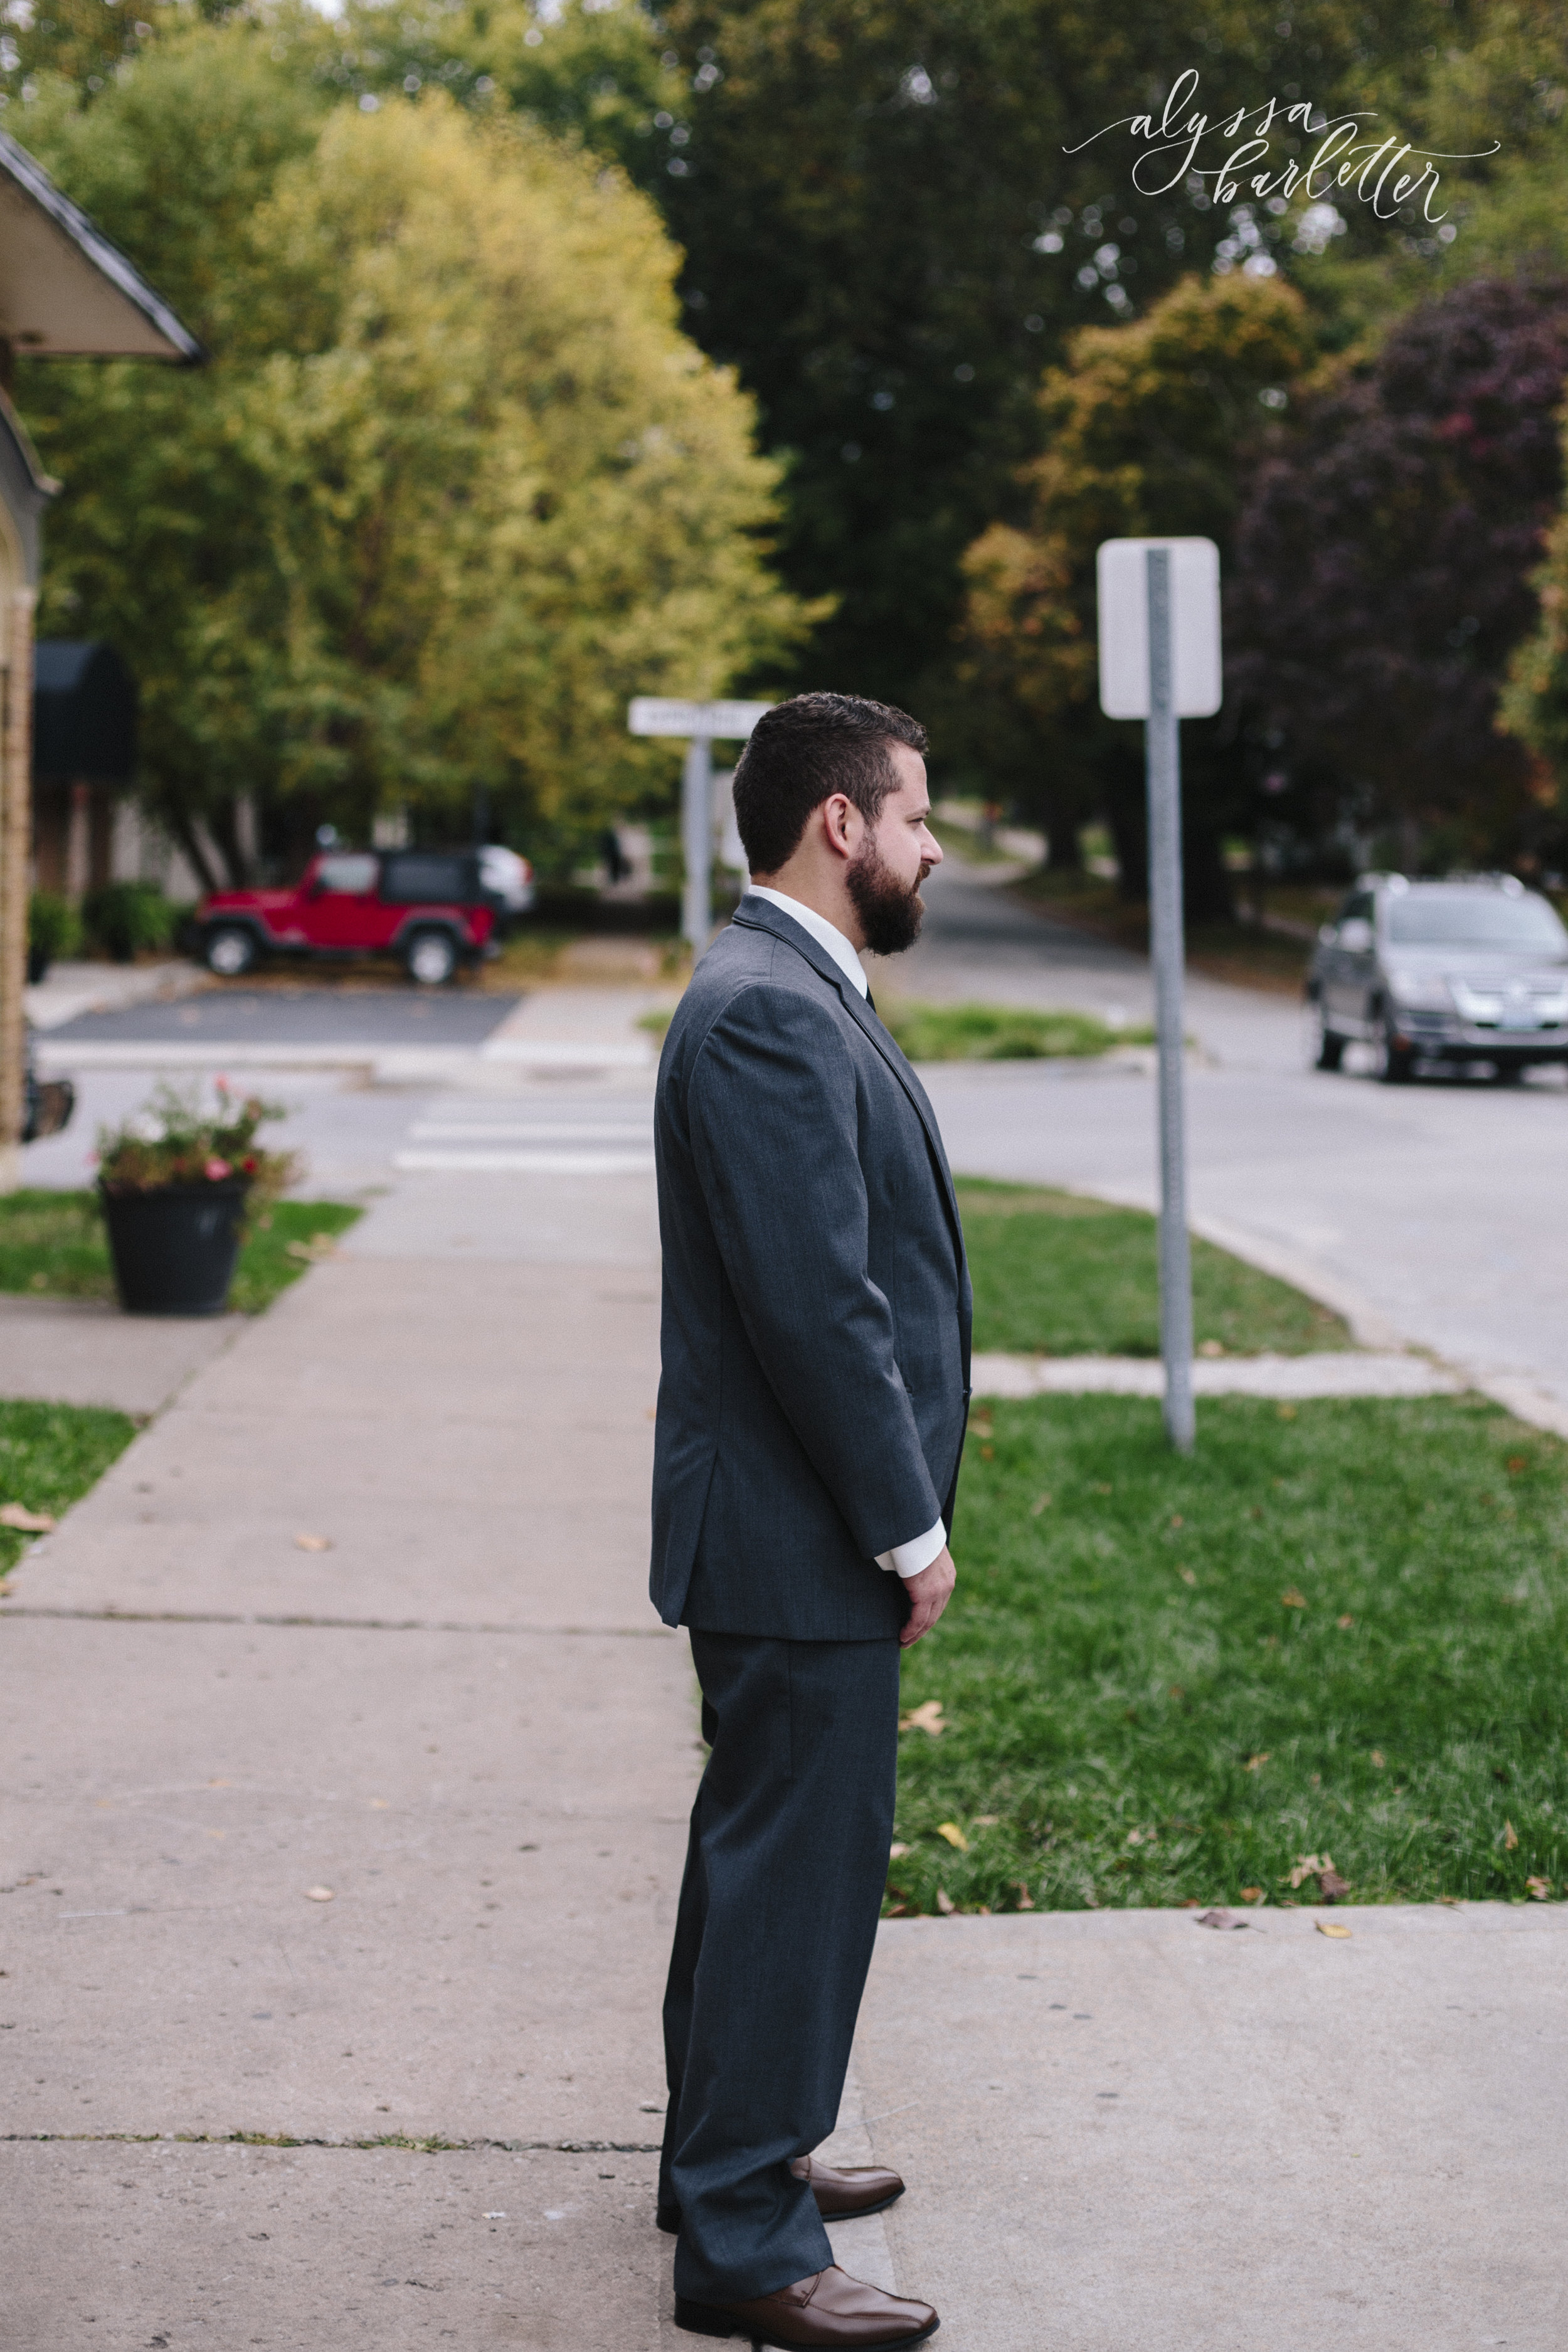 alyssa barletter photography wedding liberty missouri hipster quirky alex and shawn-1-8.jpg